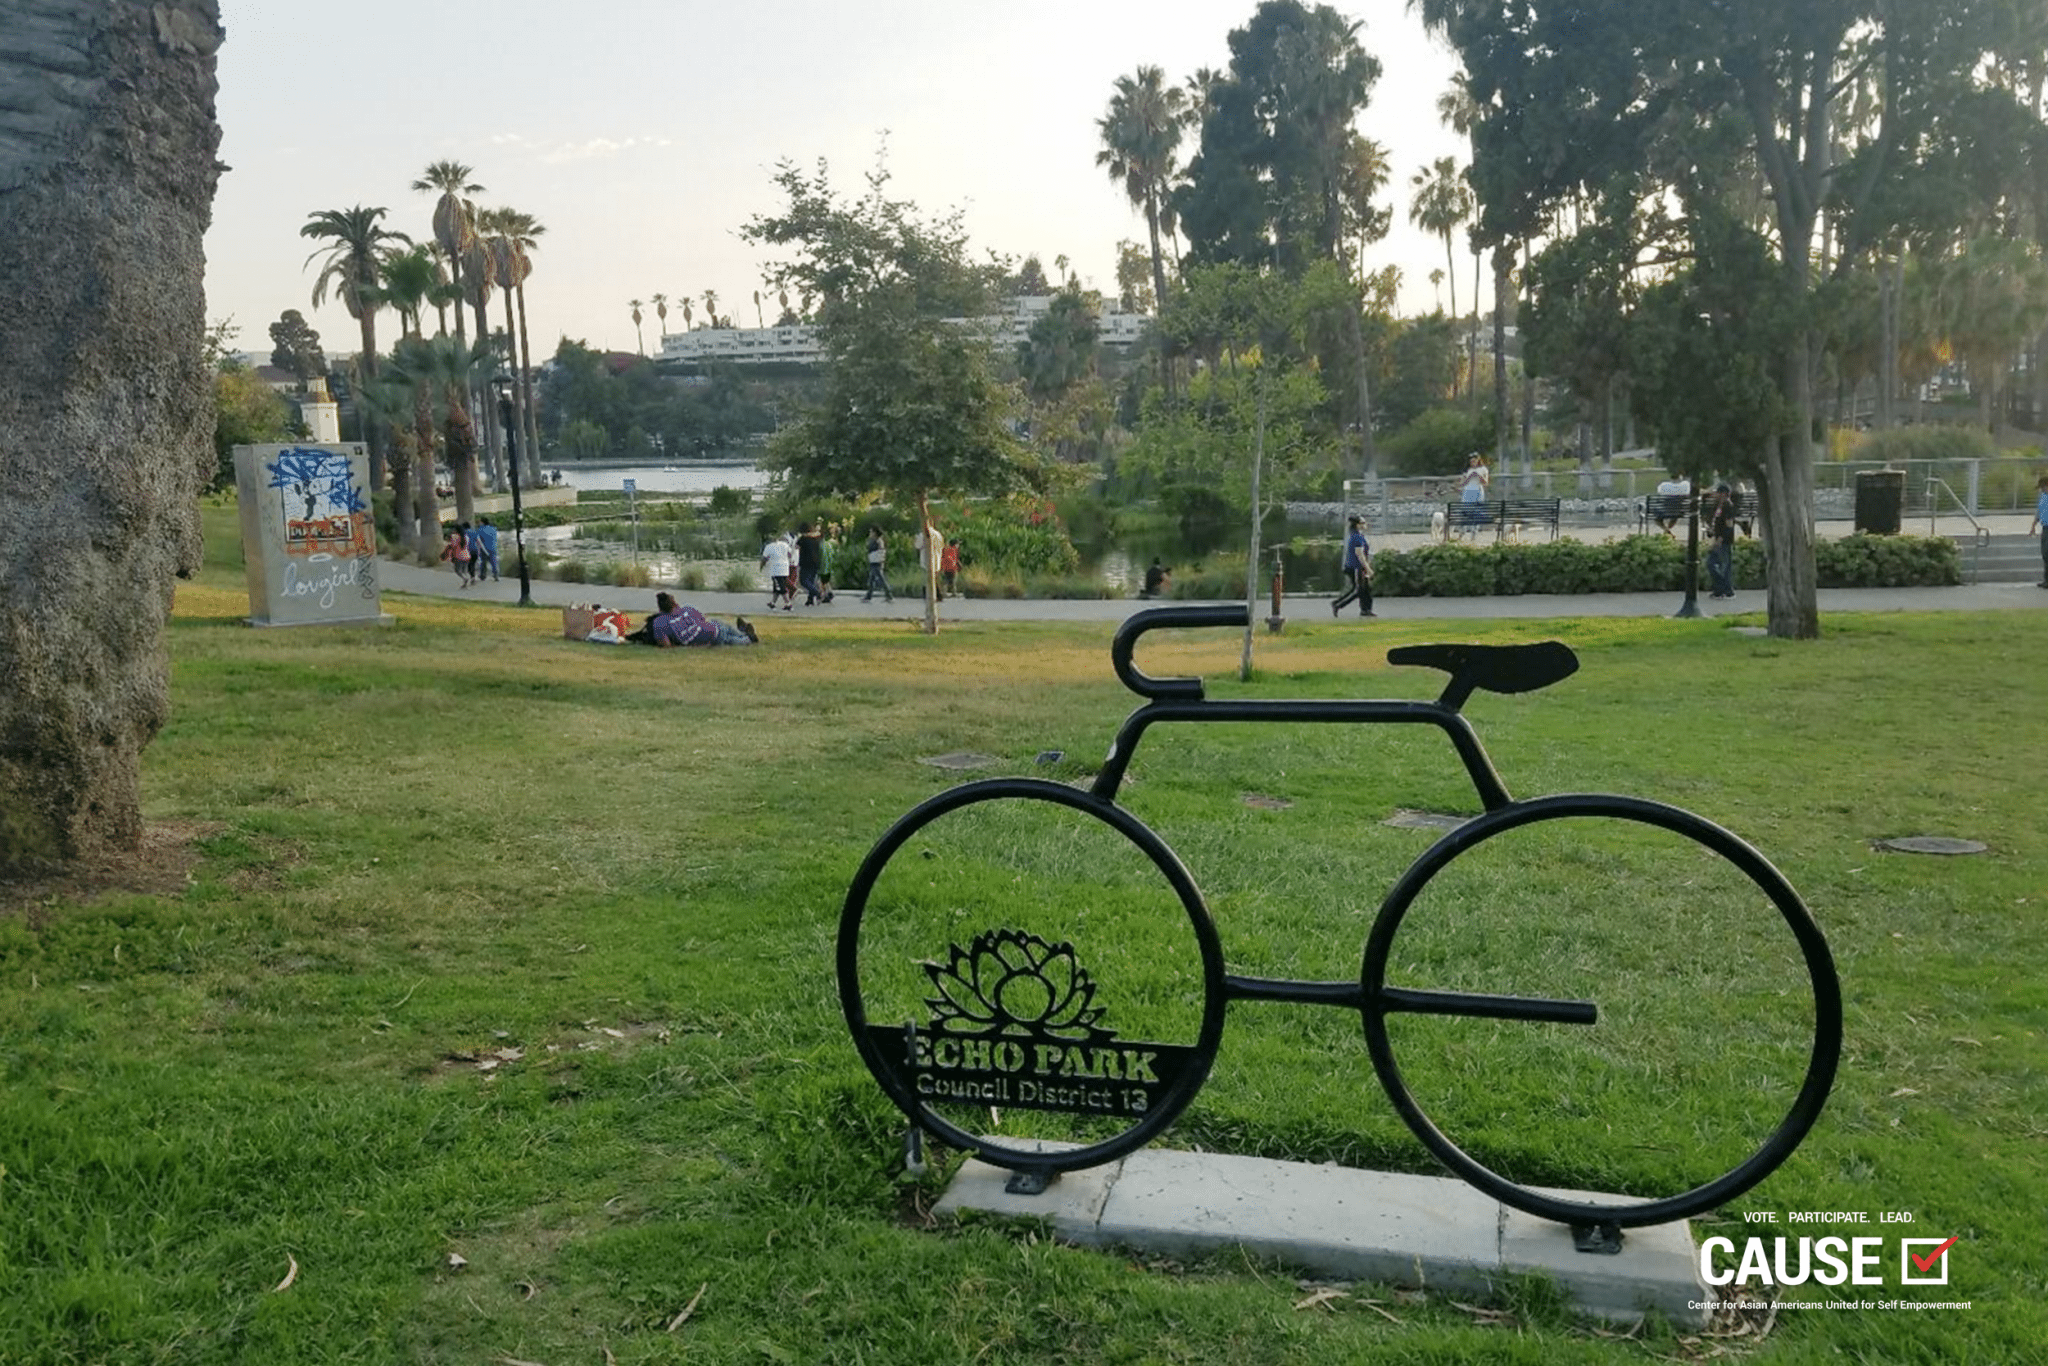 Echo Park Council District 13 sign